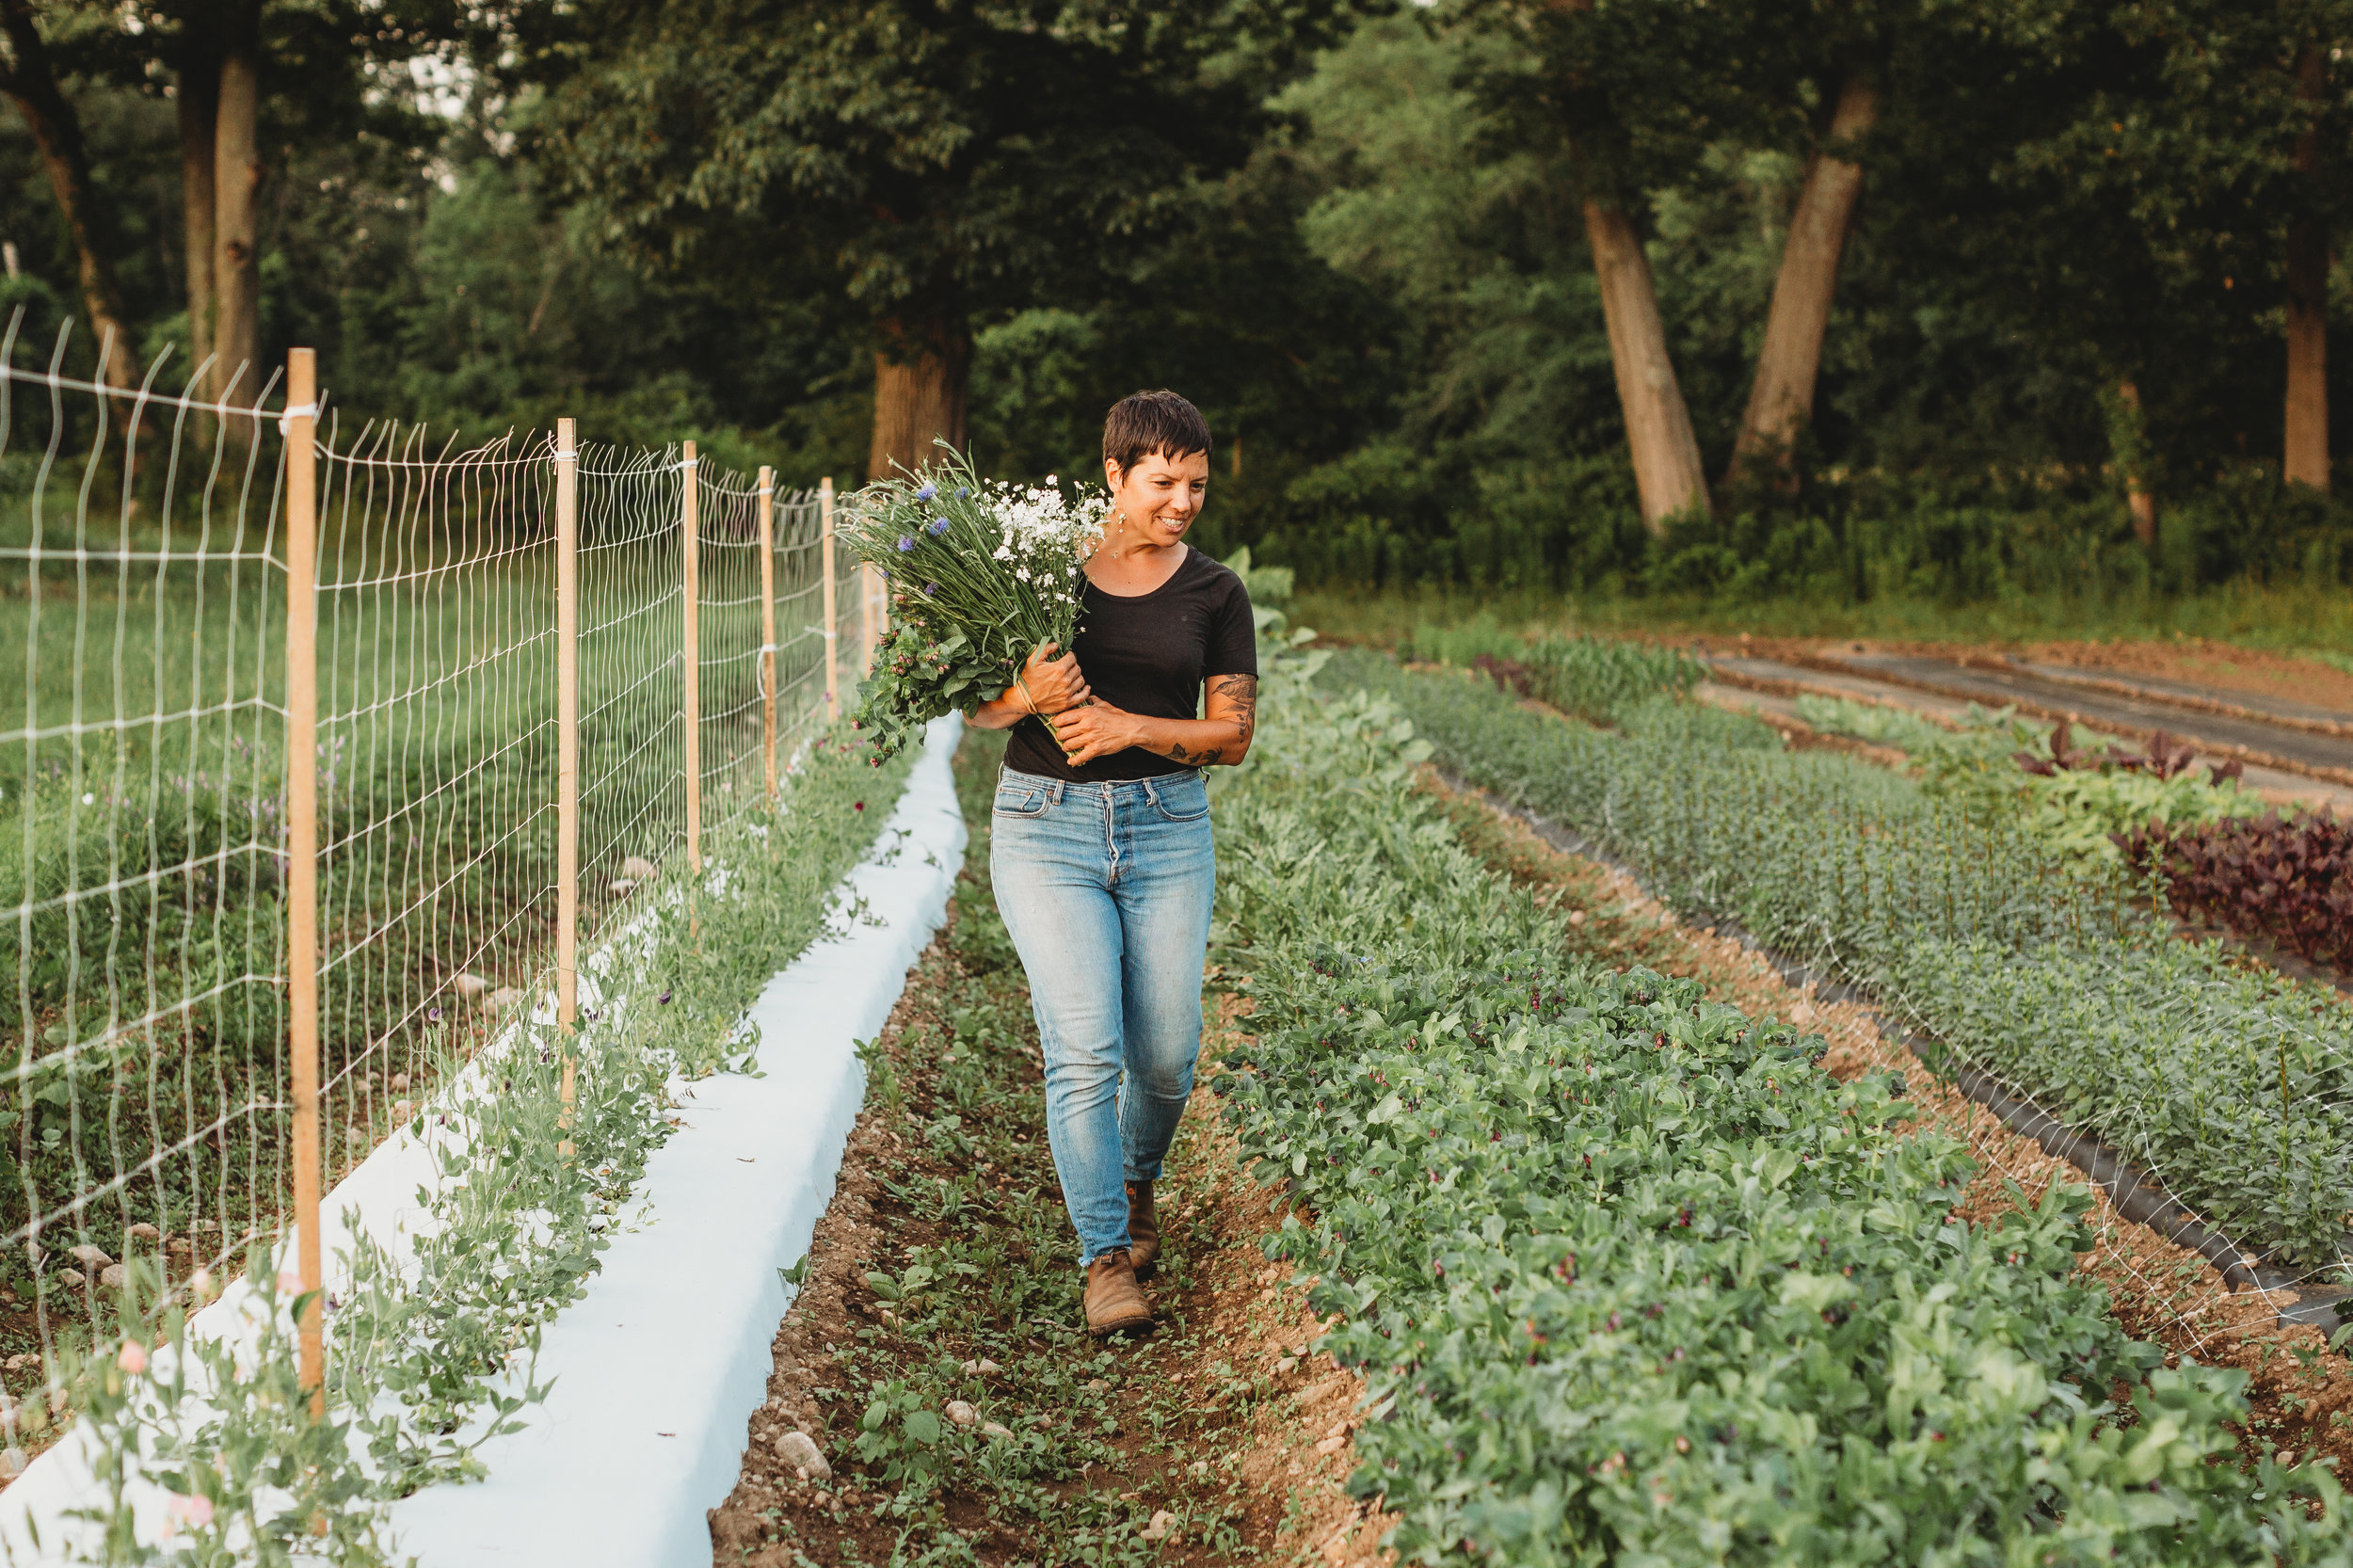 Golden hour session for flower farmer Mel Hardy in Concord, MA. Documenting her first season as the owner of Field Edge Flowers.